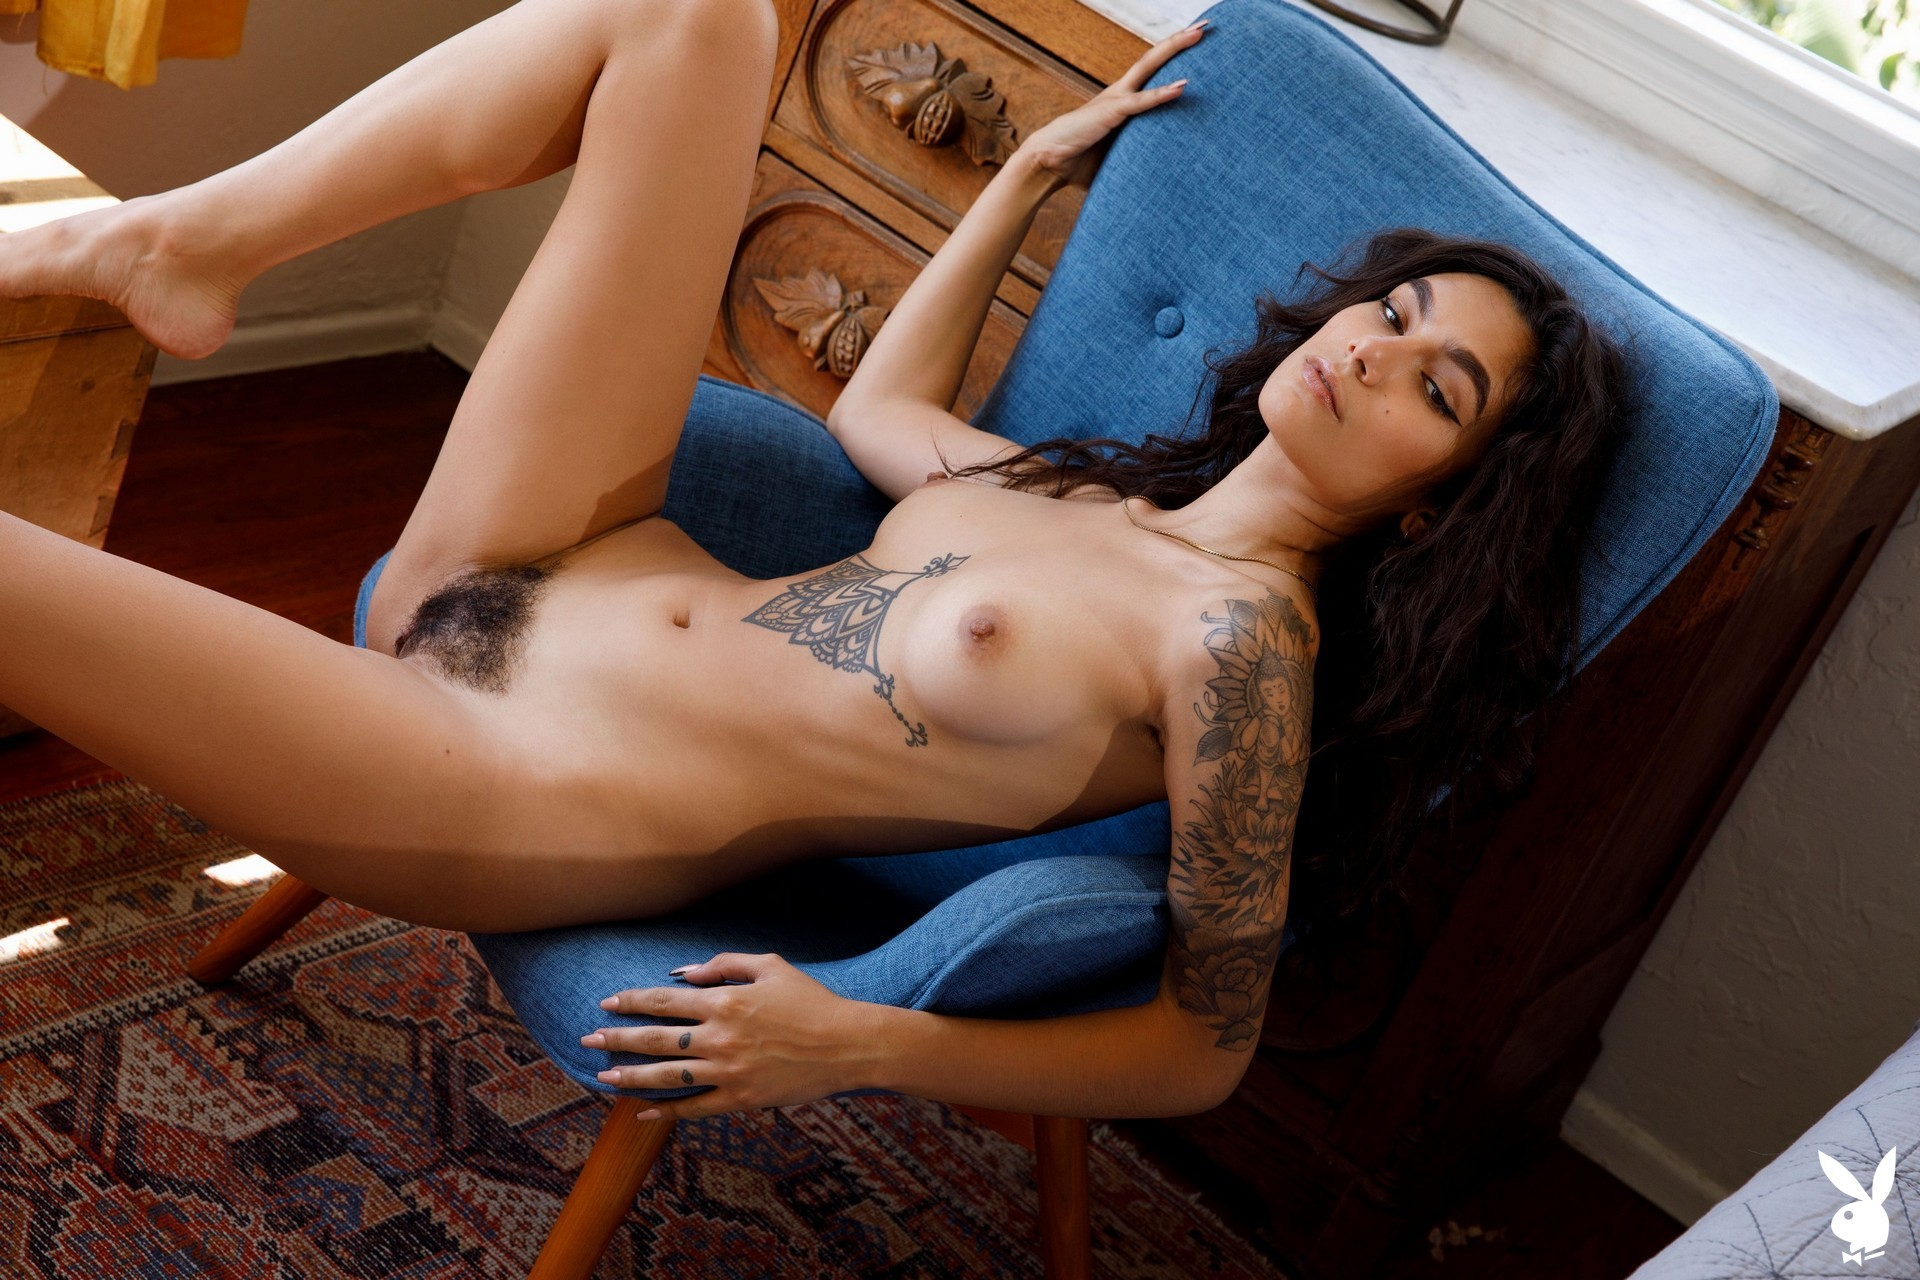 Hades In Genuine Attraction Playboy Plus (28)